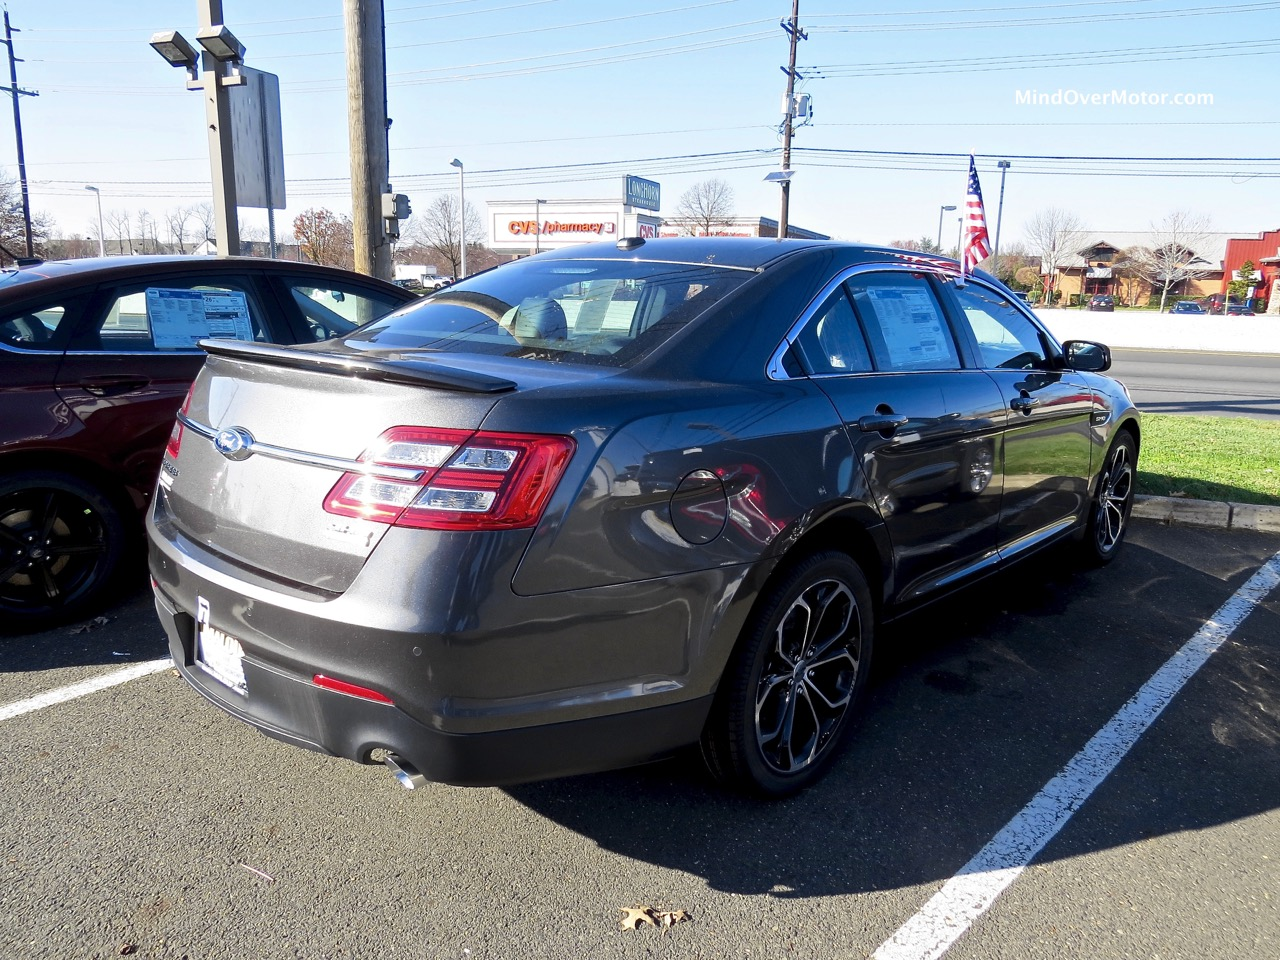 Ford Taurus SHO vs Chevrolet SS, Head To Head | Mind Over Motor